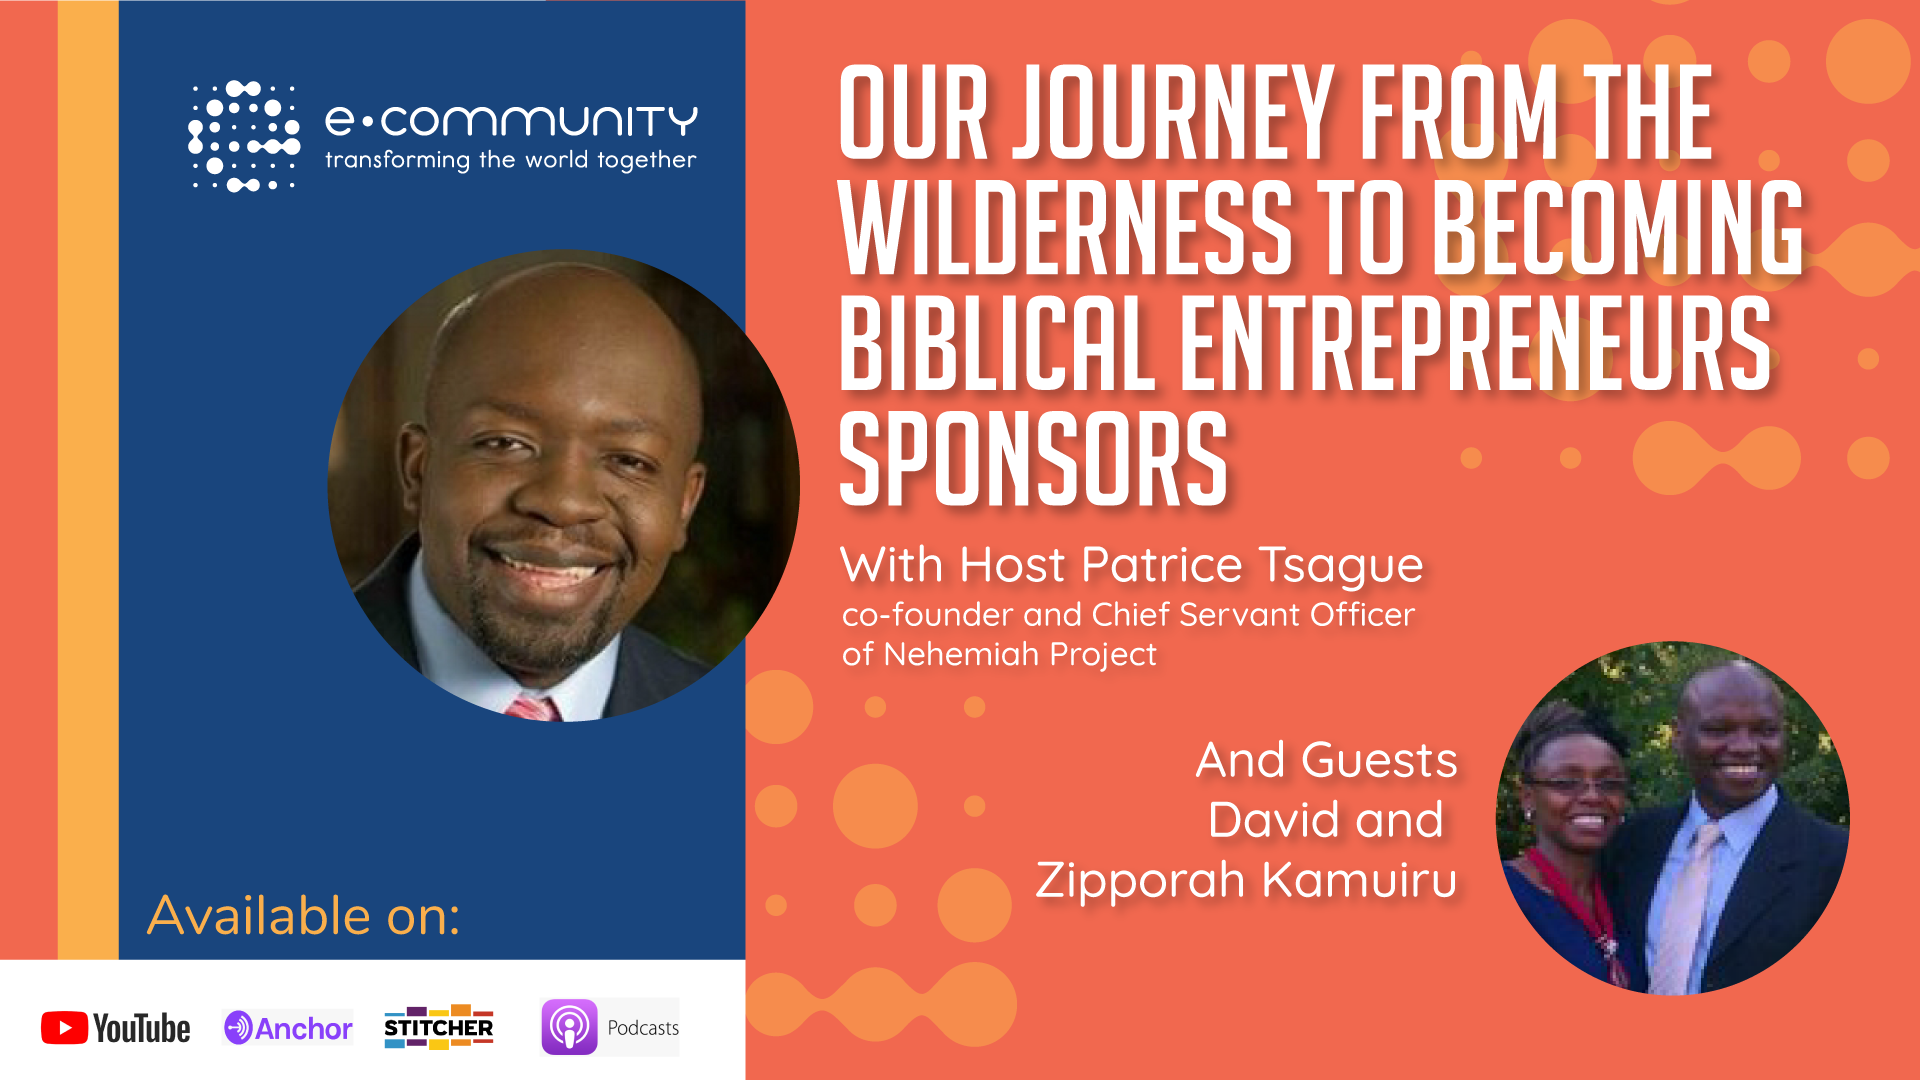 Our Journey from the Wilderness to becoming Biblical Entrepreneurs Sponsors